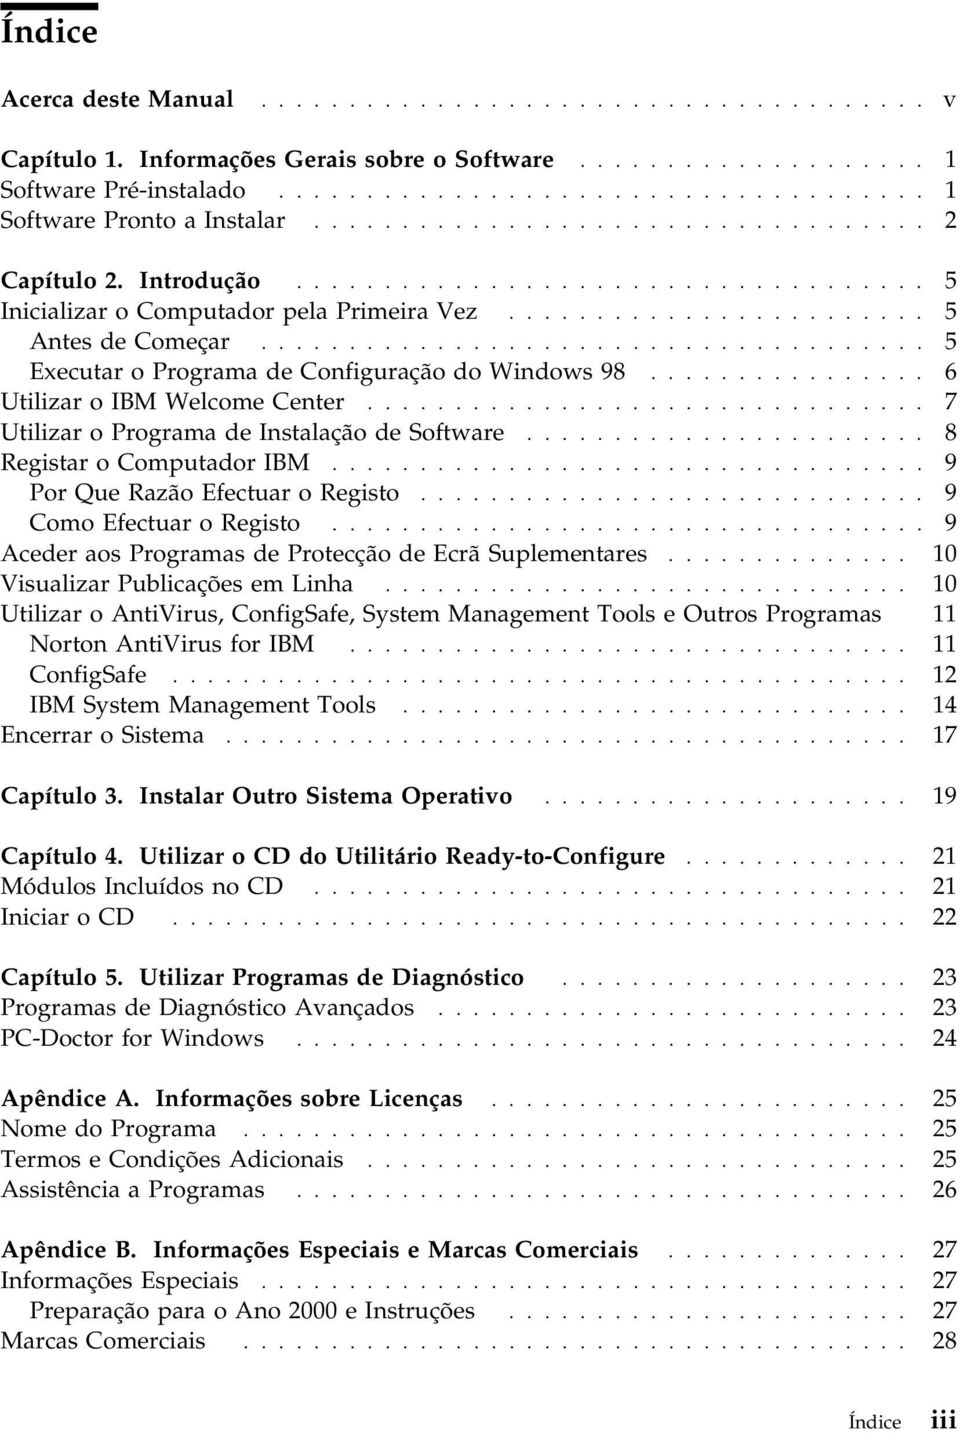 ..................................... 5 Executar o Programa de Configuração do Windows 98................ 6 Utilizar o IBM Welcome Center................................ 7 Utilizar o Programa de Instalação de Software.